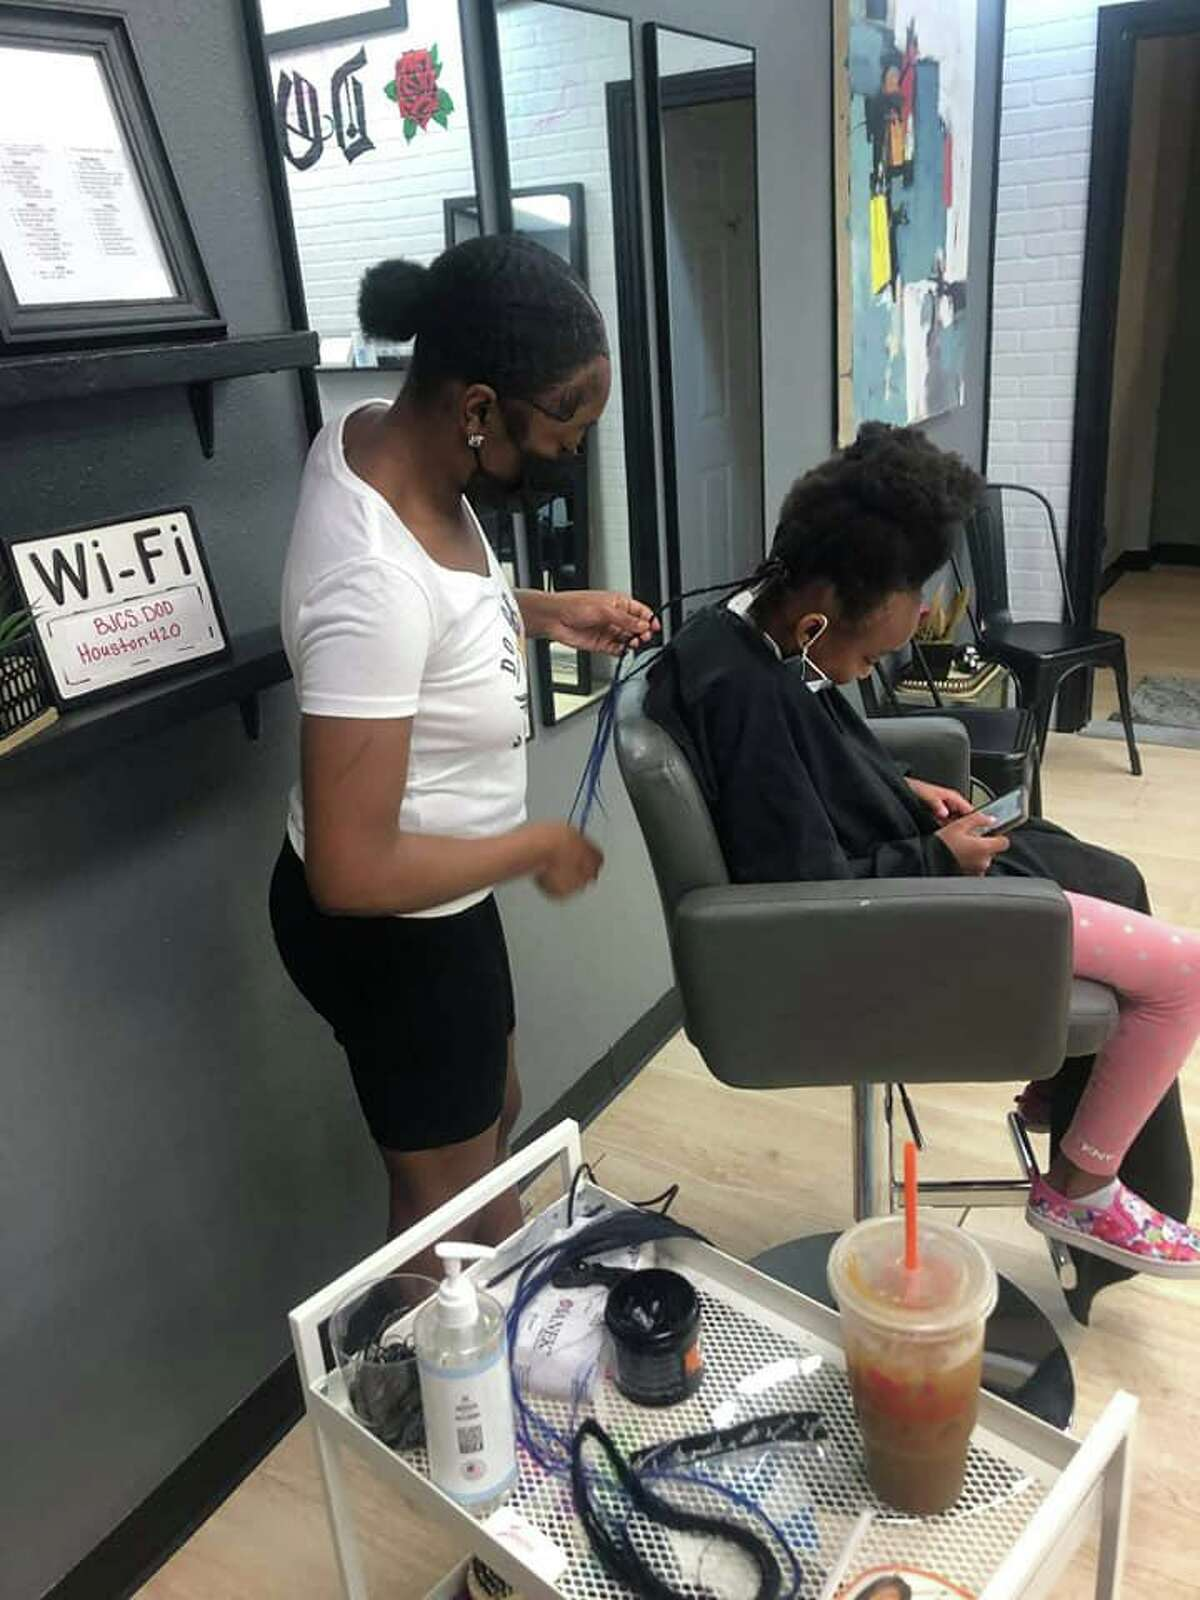 Joe Kane, the owner of Barber Joe's Chop Shop on Center, and his staff devoted one Sunday (Aug. 15) to making sure students of all ages started the year off by giving free haircuts to 100 students in Deer Park ISD.